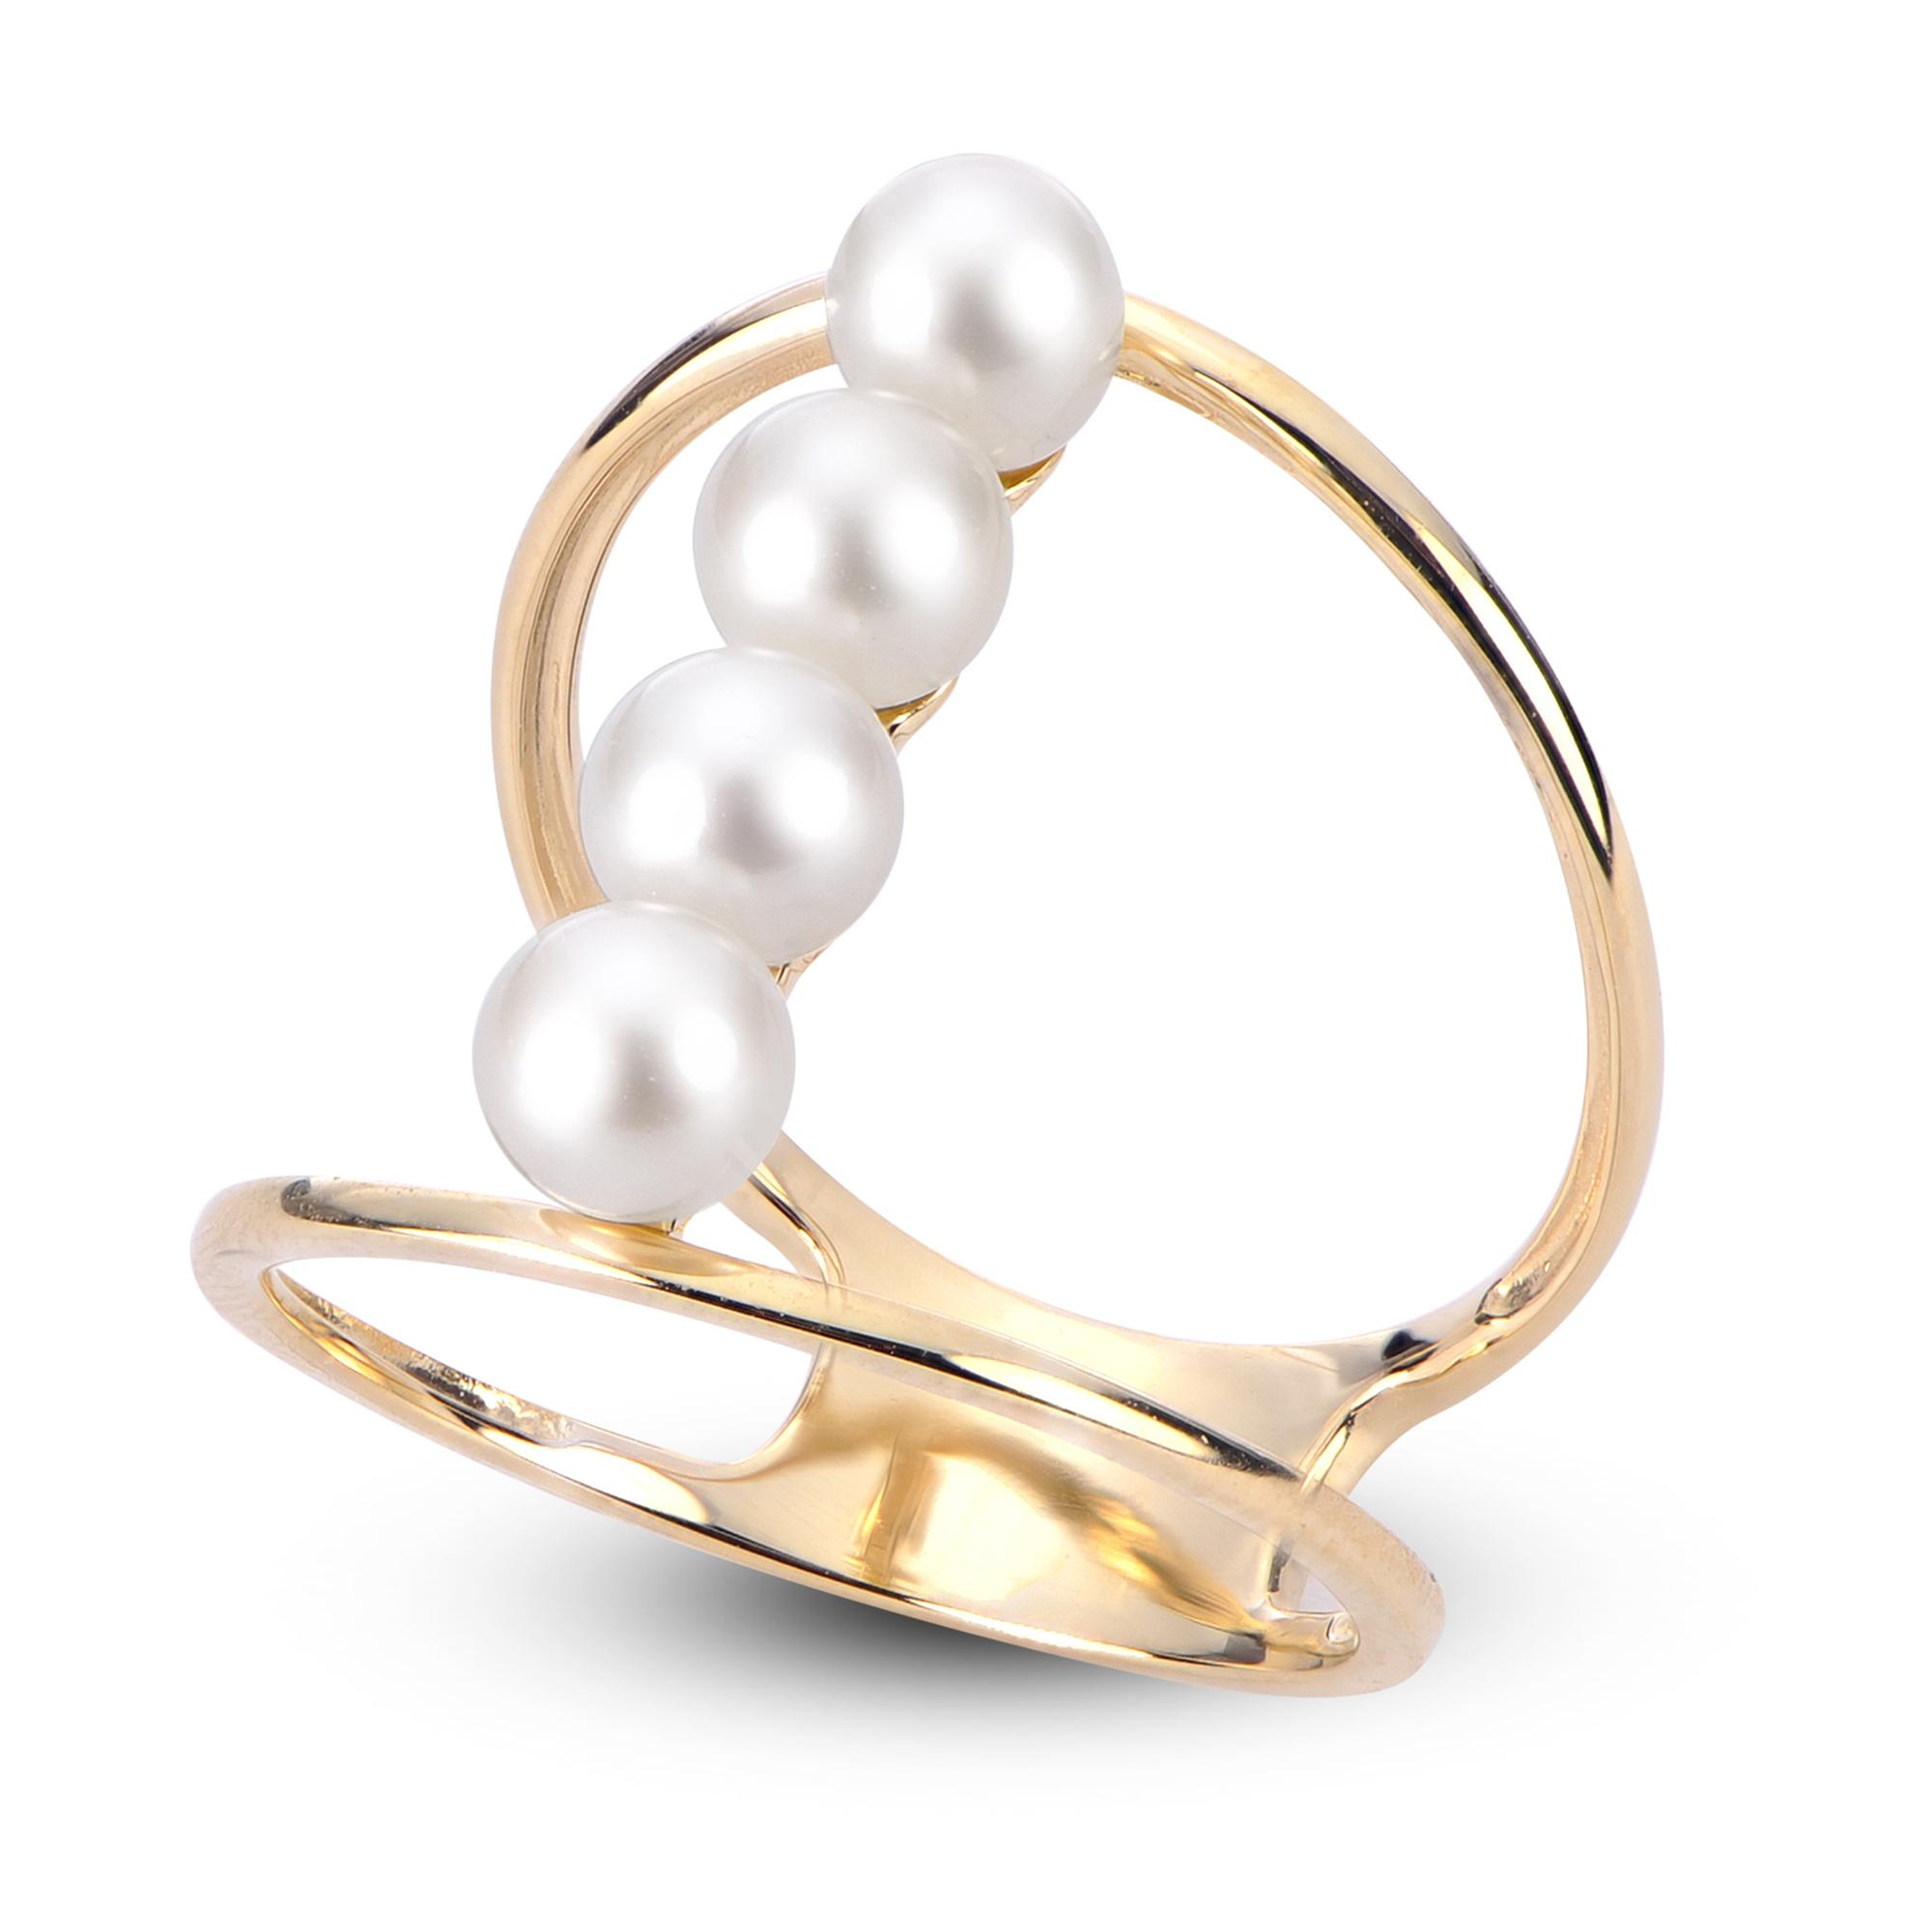 427af406c 14K Yellow Gold Freshwater Pearl Ring 918776/FW-7 | Rings from Alan ...